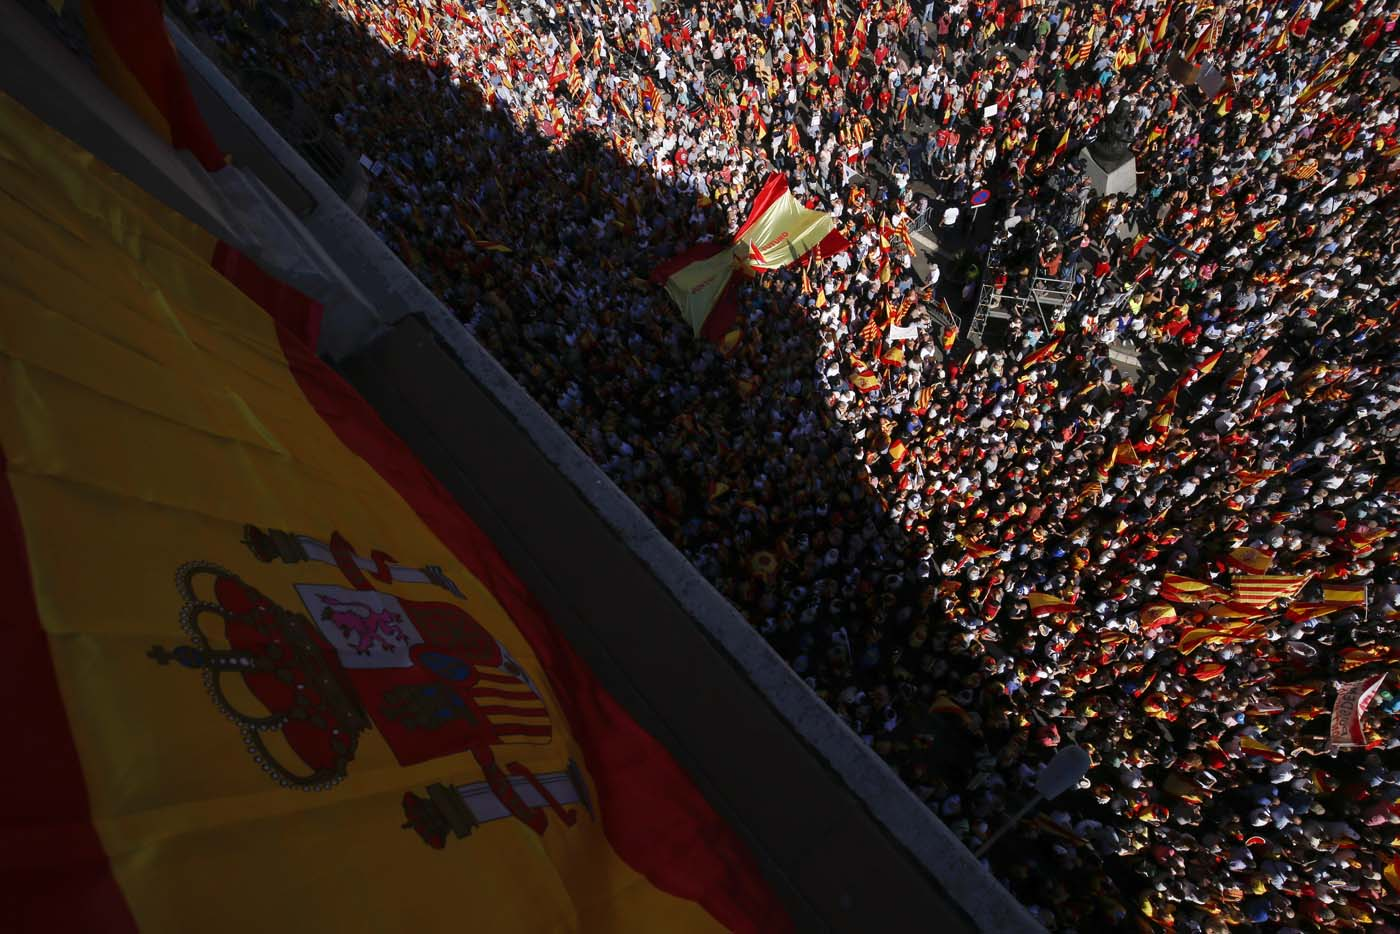 "Protesters hold Spanish and Catalan flags during a demonstration called by ""Societat Civil Catalana"" (Catalan Civil Society) to support the unity of Spain on October 8, 2017 in Barcelona. Spain braced for more protests despite tentative signs that the sides may be seeking to defuse the crisis after Madrid offered a first apology to Catalans injured by police during their outlawed independence vote. / AFP PHOTO / PAU BARRENA"